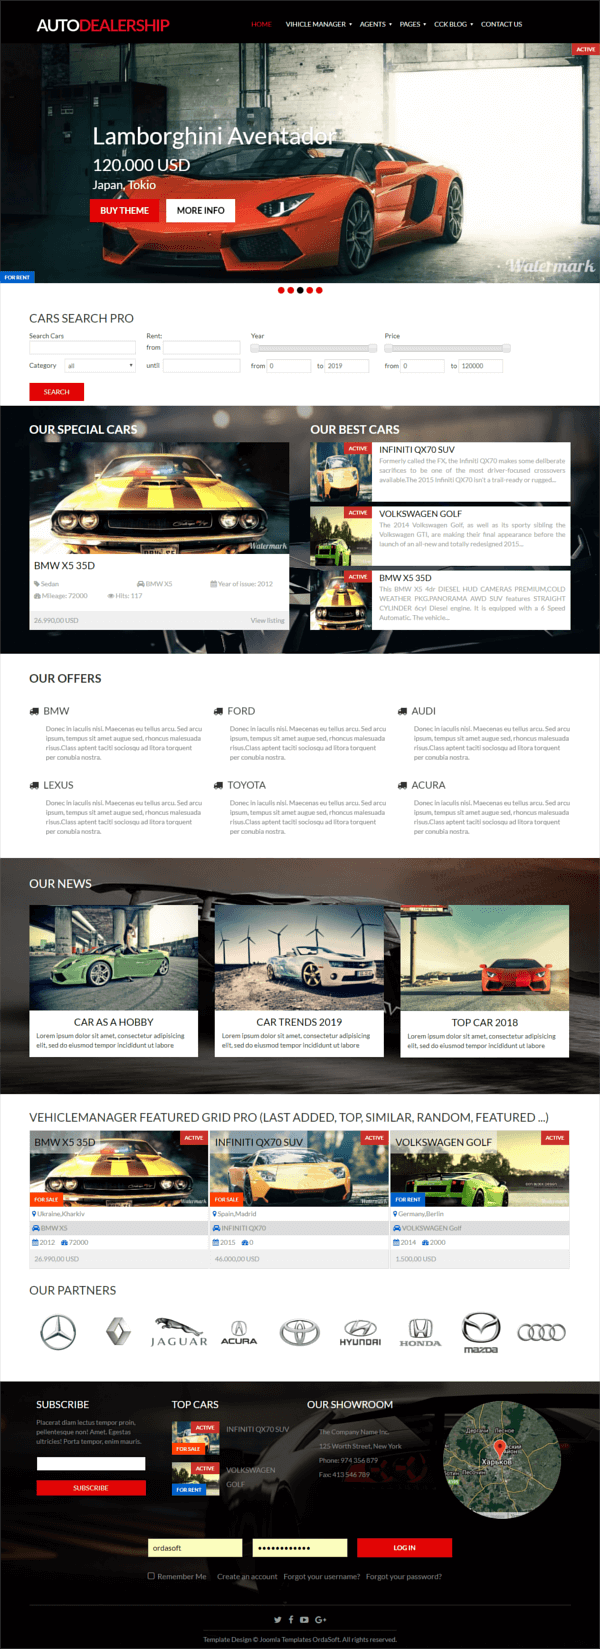 Auto Dealership, Car Joomla Template, full screen